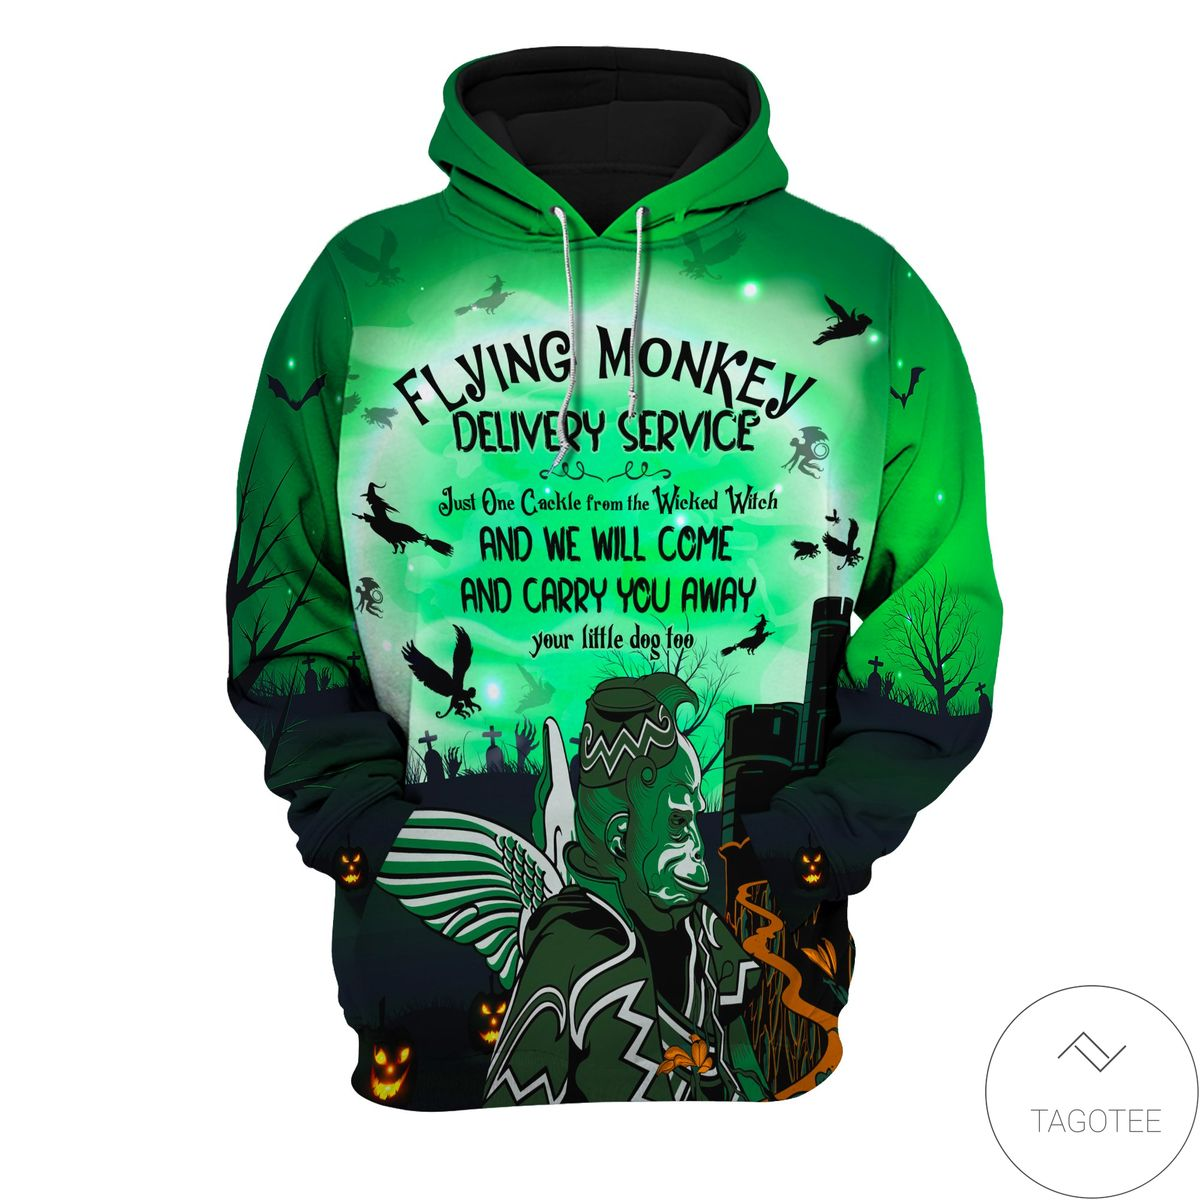 Sale Off Halloween Flying Monkey Delivery Service Hoodie